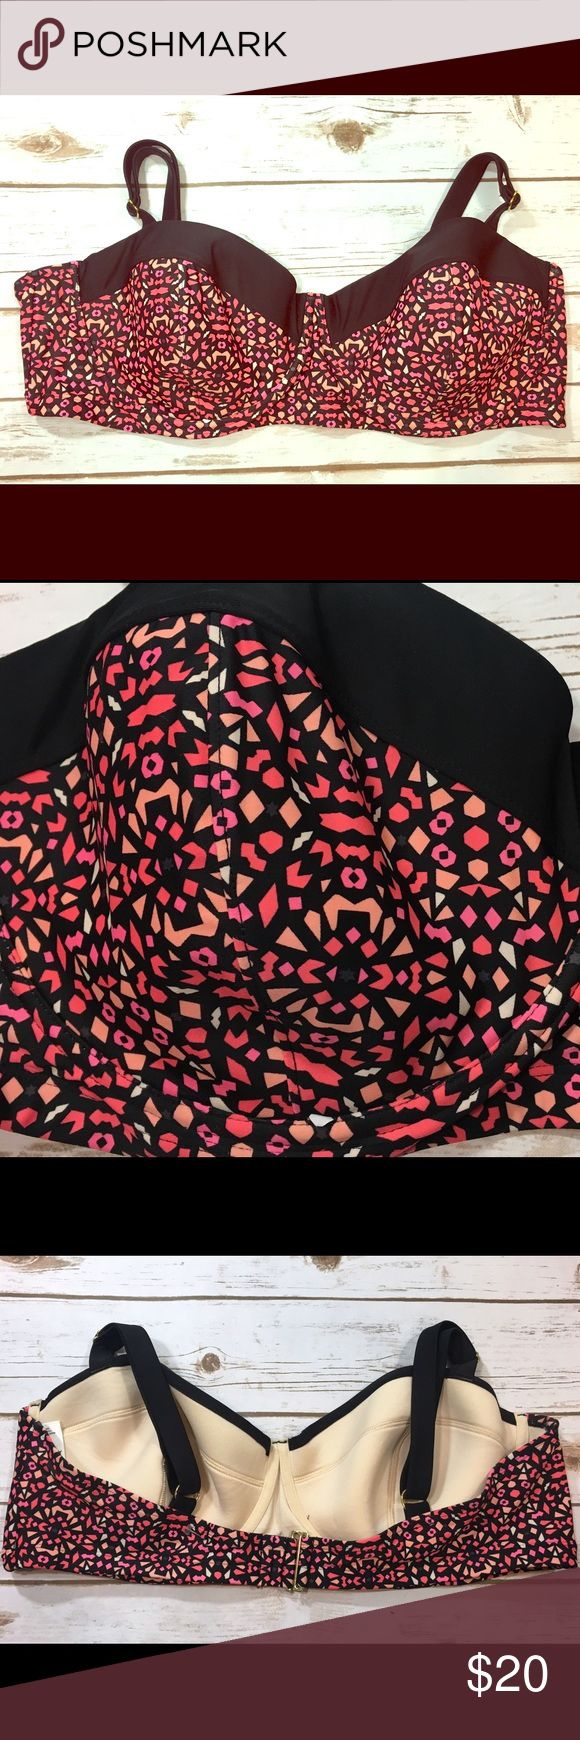 Ava & Viv Plus Size Bikini Top 26W - NEW Ava & Viv brand black and pink mosaic/geometric patterned bikini swimsuit top. Cups have padding and underwire.  **Listing is for the top ONLY.**  Labeled a size 26W.   Brand new without tags, unworn. No flaws to note. Black line on inner size label to prevent store return. Ava & Viv Swim Bikinis